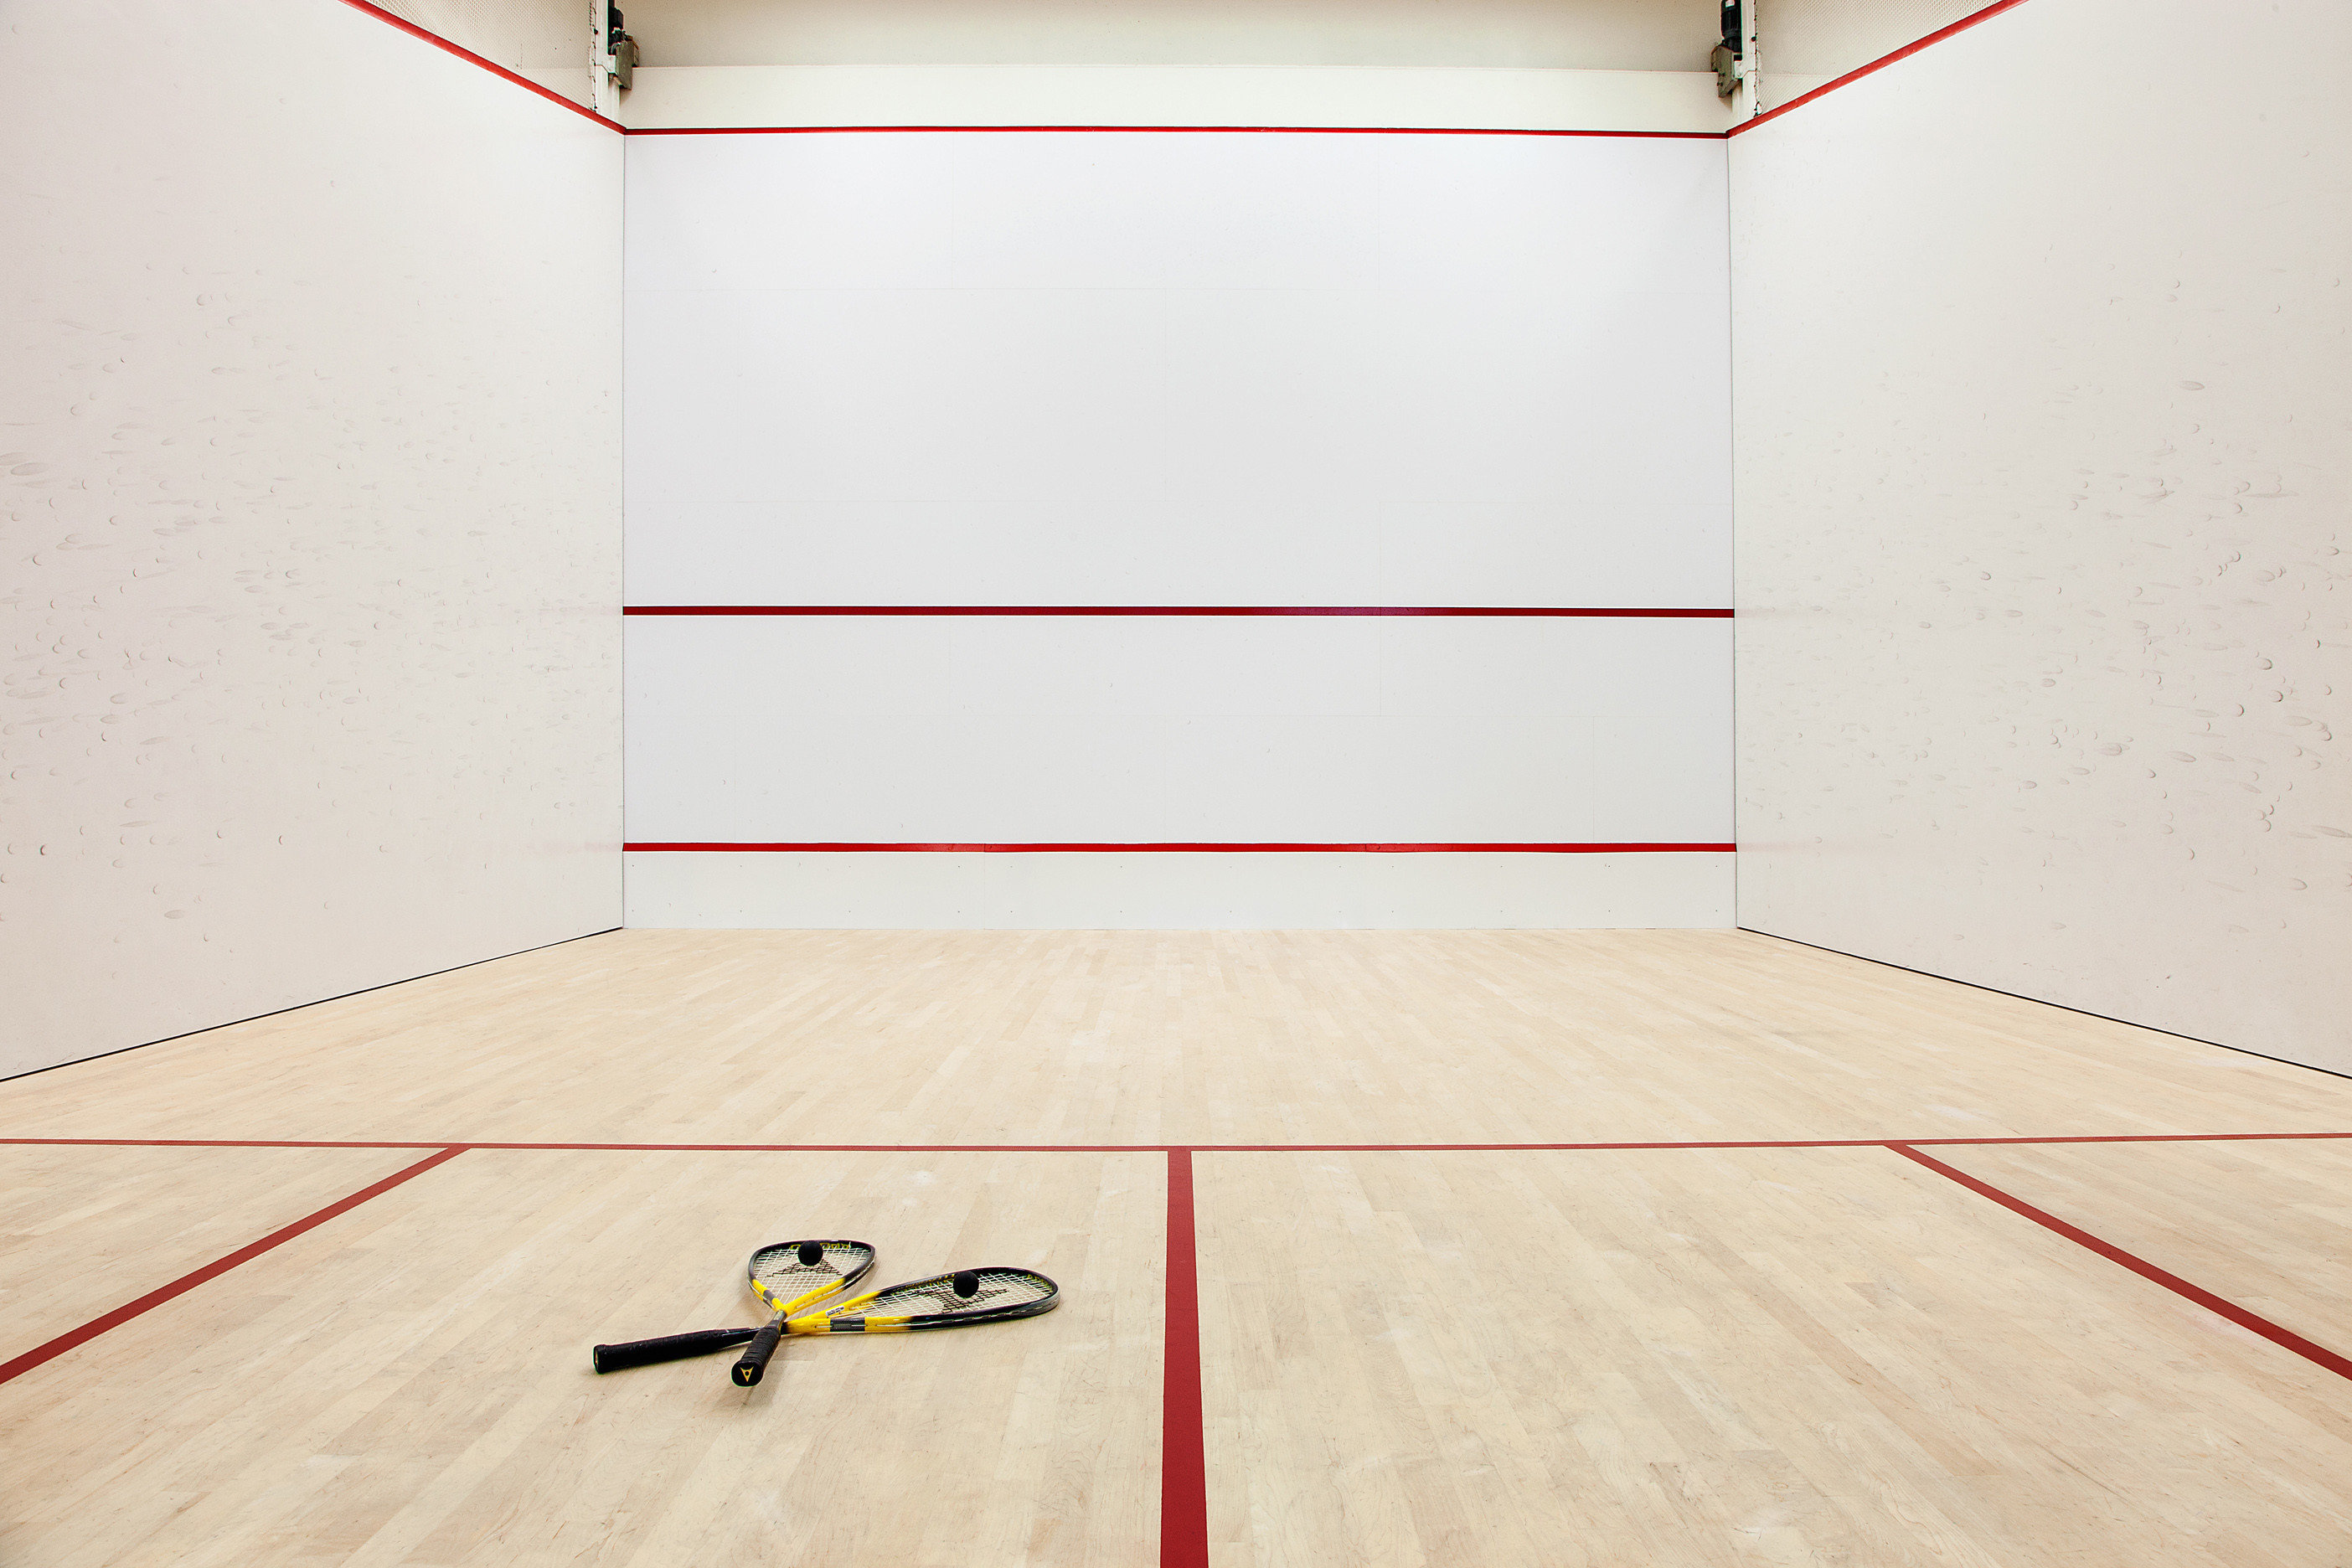 racquetball athletic game Sport ball game squash sports wall & ball sports racquet sport bowling pin individual sports illustration